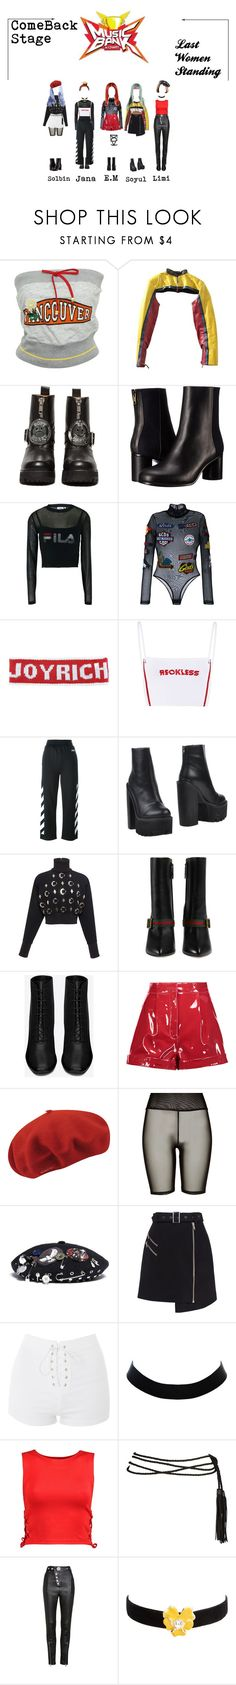 """LWS/ Comback Stage/MB"" by lws-official on Polyvore featuring D&G, Jean-Paul Gaultier, UNIF, Paul Smith, Fila, GCDS, Off-White, Jeffrey Campbell, David Koma and Gucci"